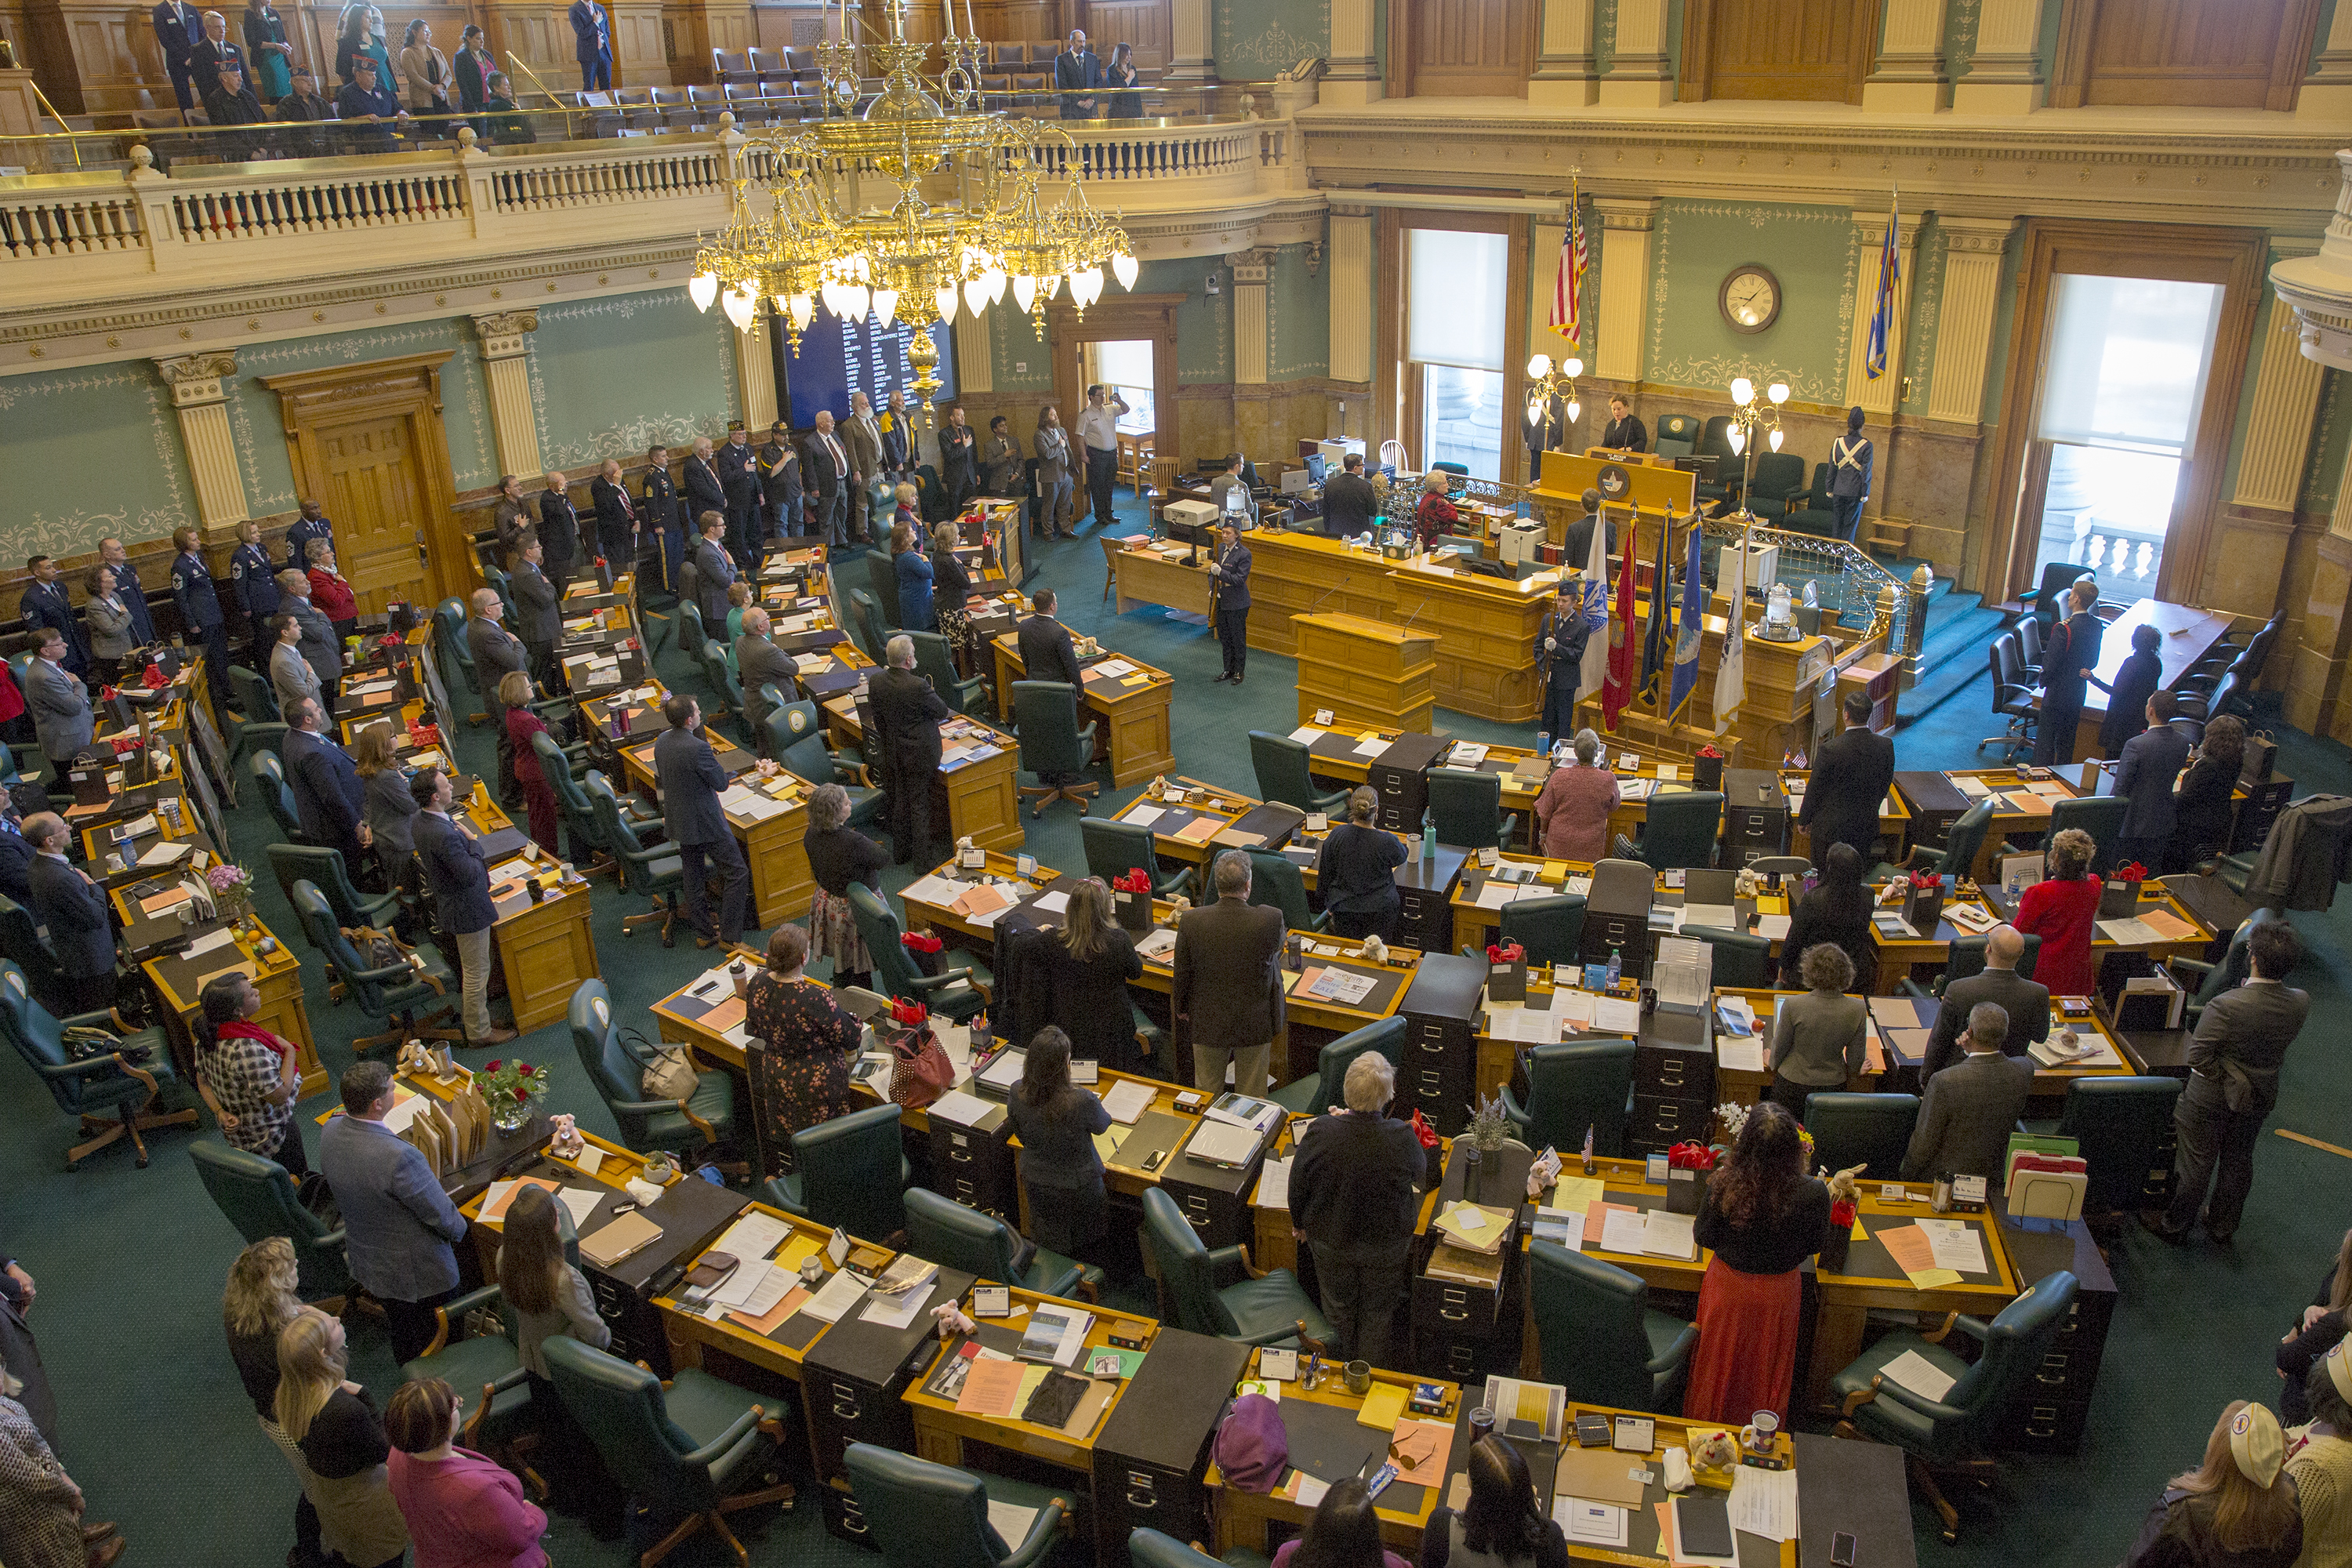 Photo: Colorado Legislature Military Appreciation Day 2019 | Capitol Crowd